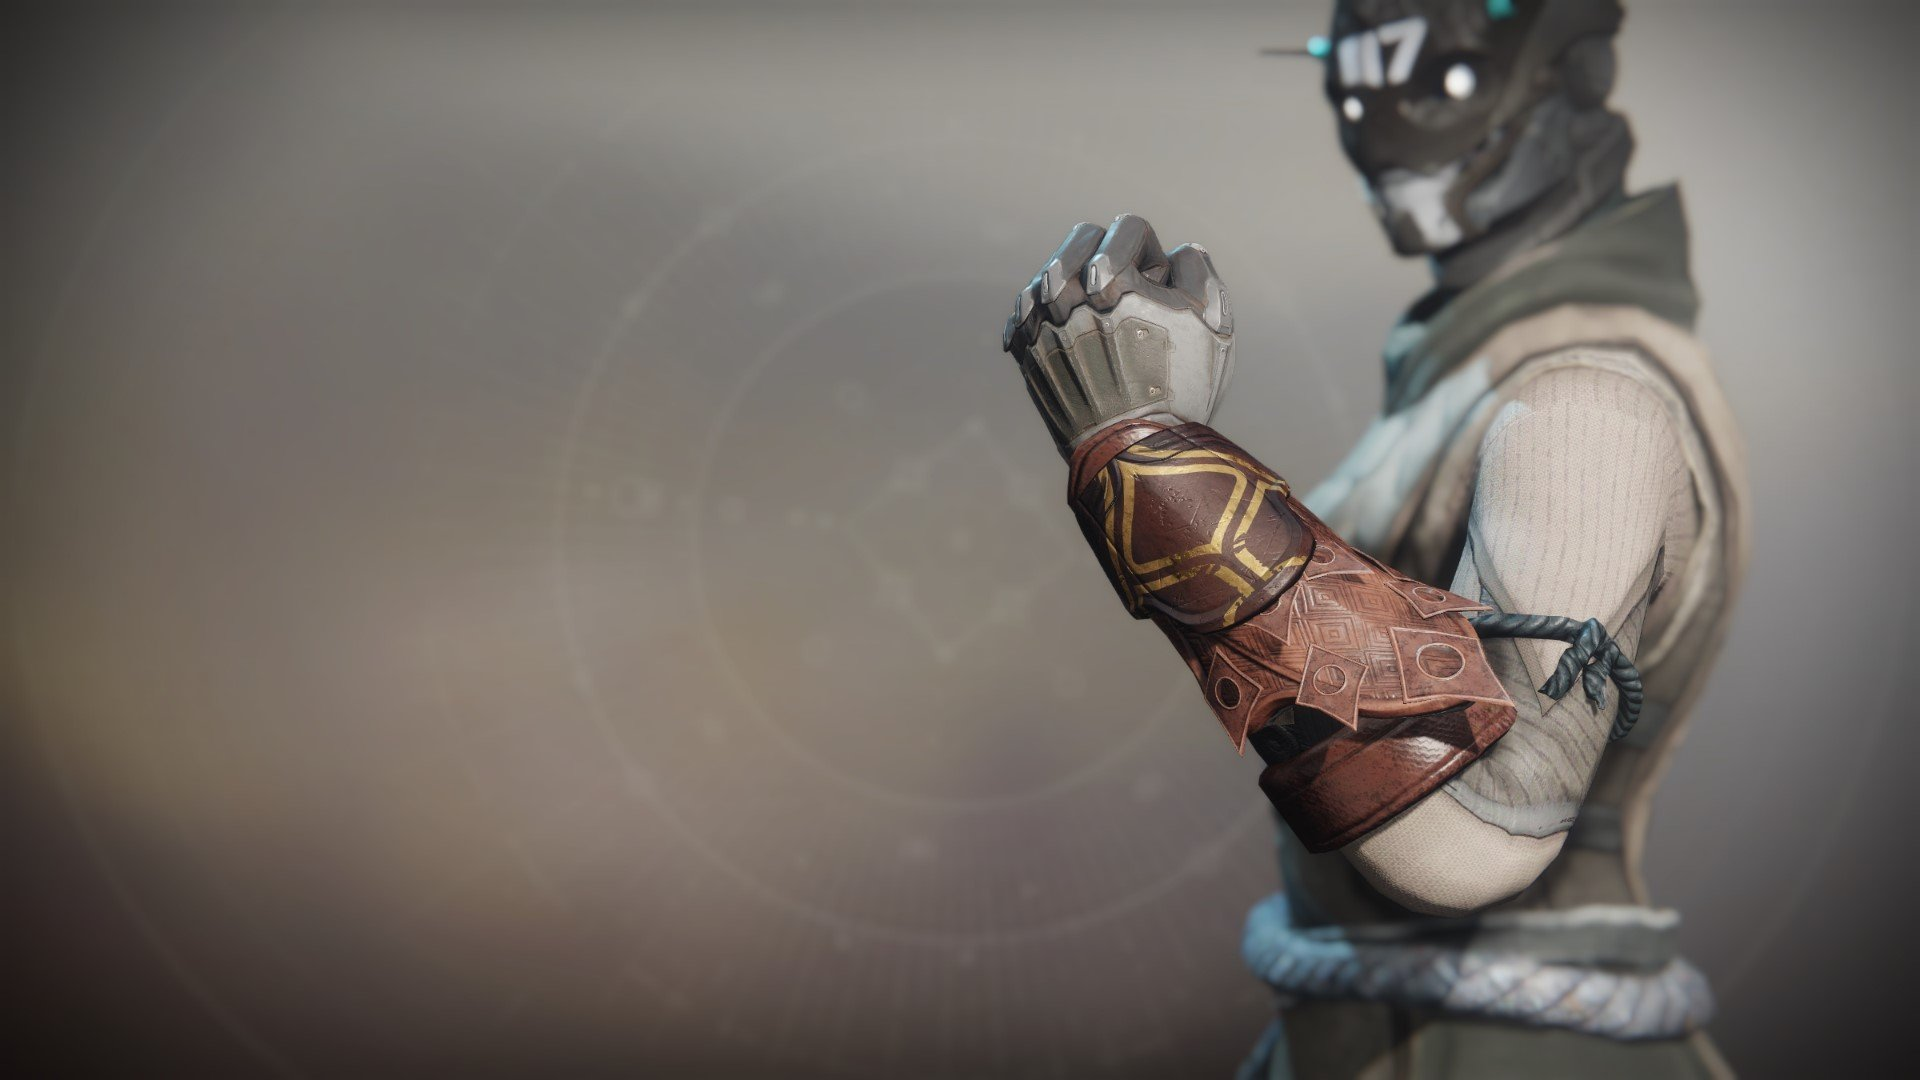 An in-game render of the Iron Fellowship Gloves.